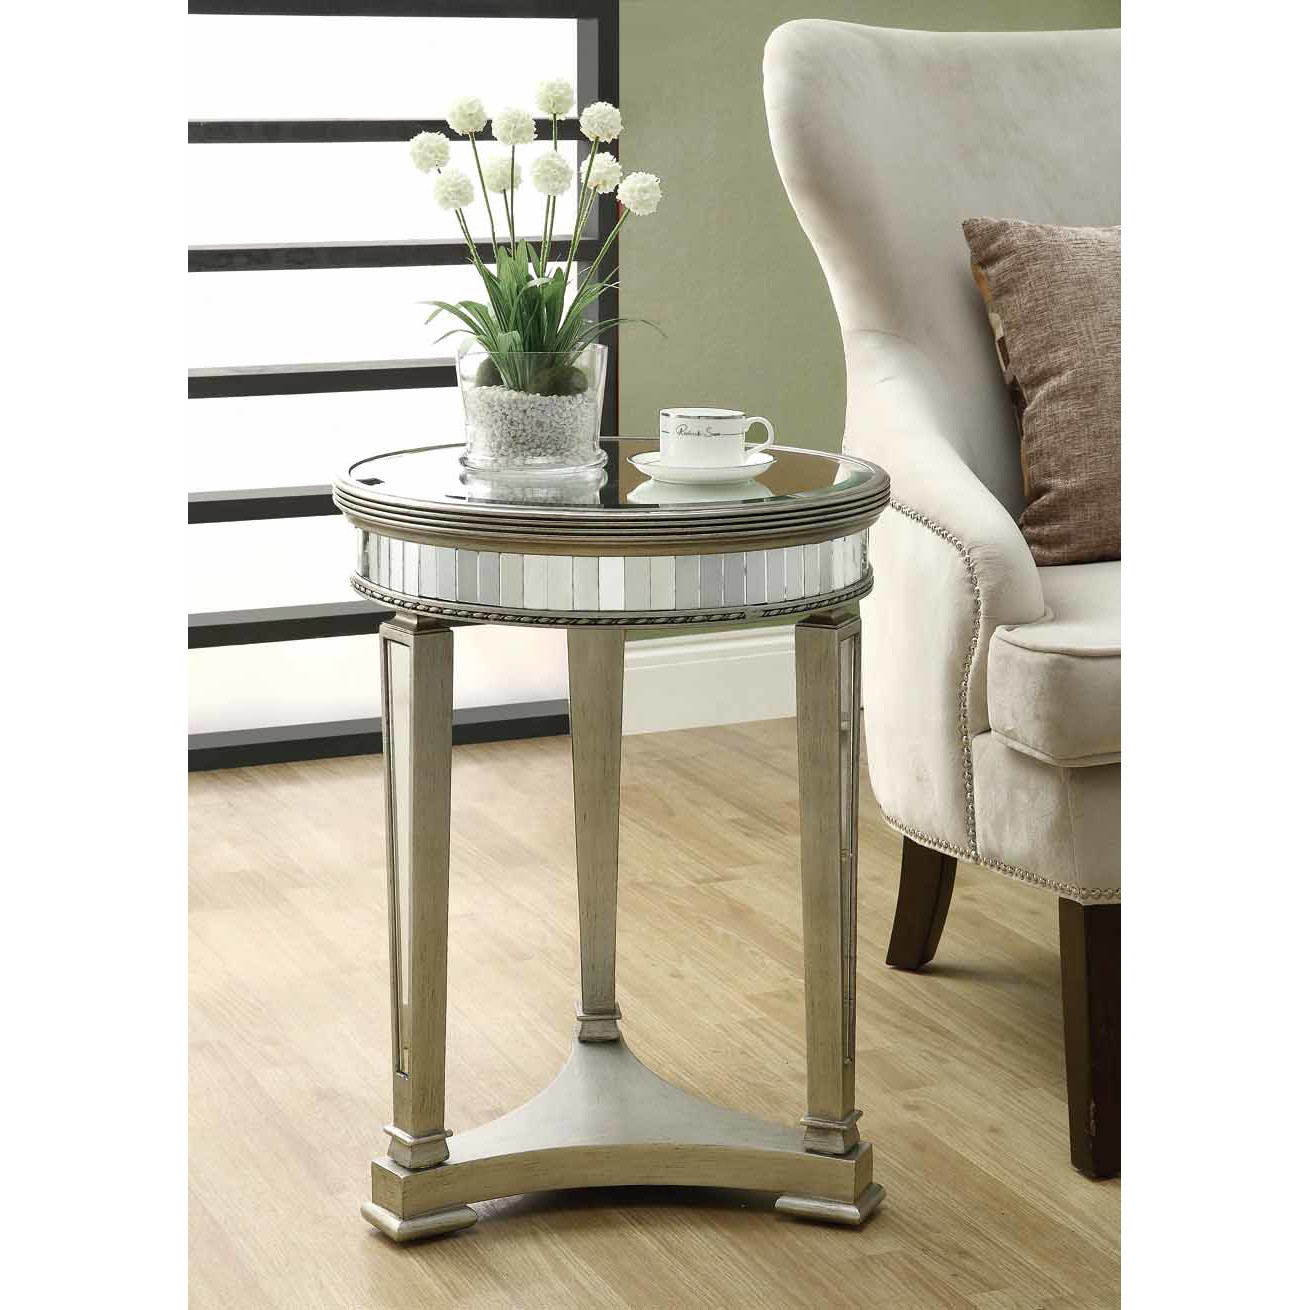 monarch specialties inc mirrored end table reviews wicker accent and mirror round pedestal bedside small storage chest farm style dining garden pier one vases narrow decorative